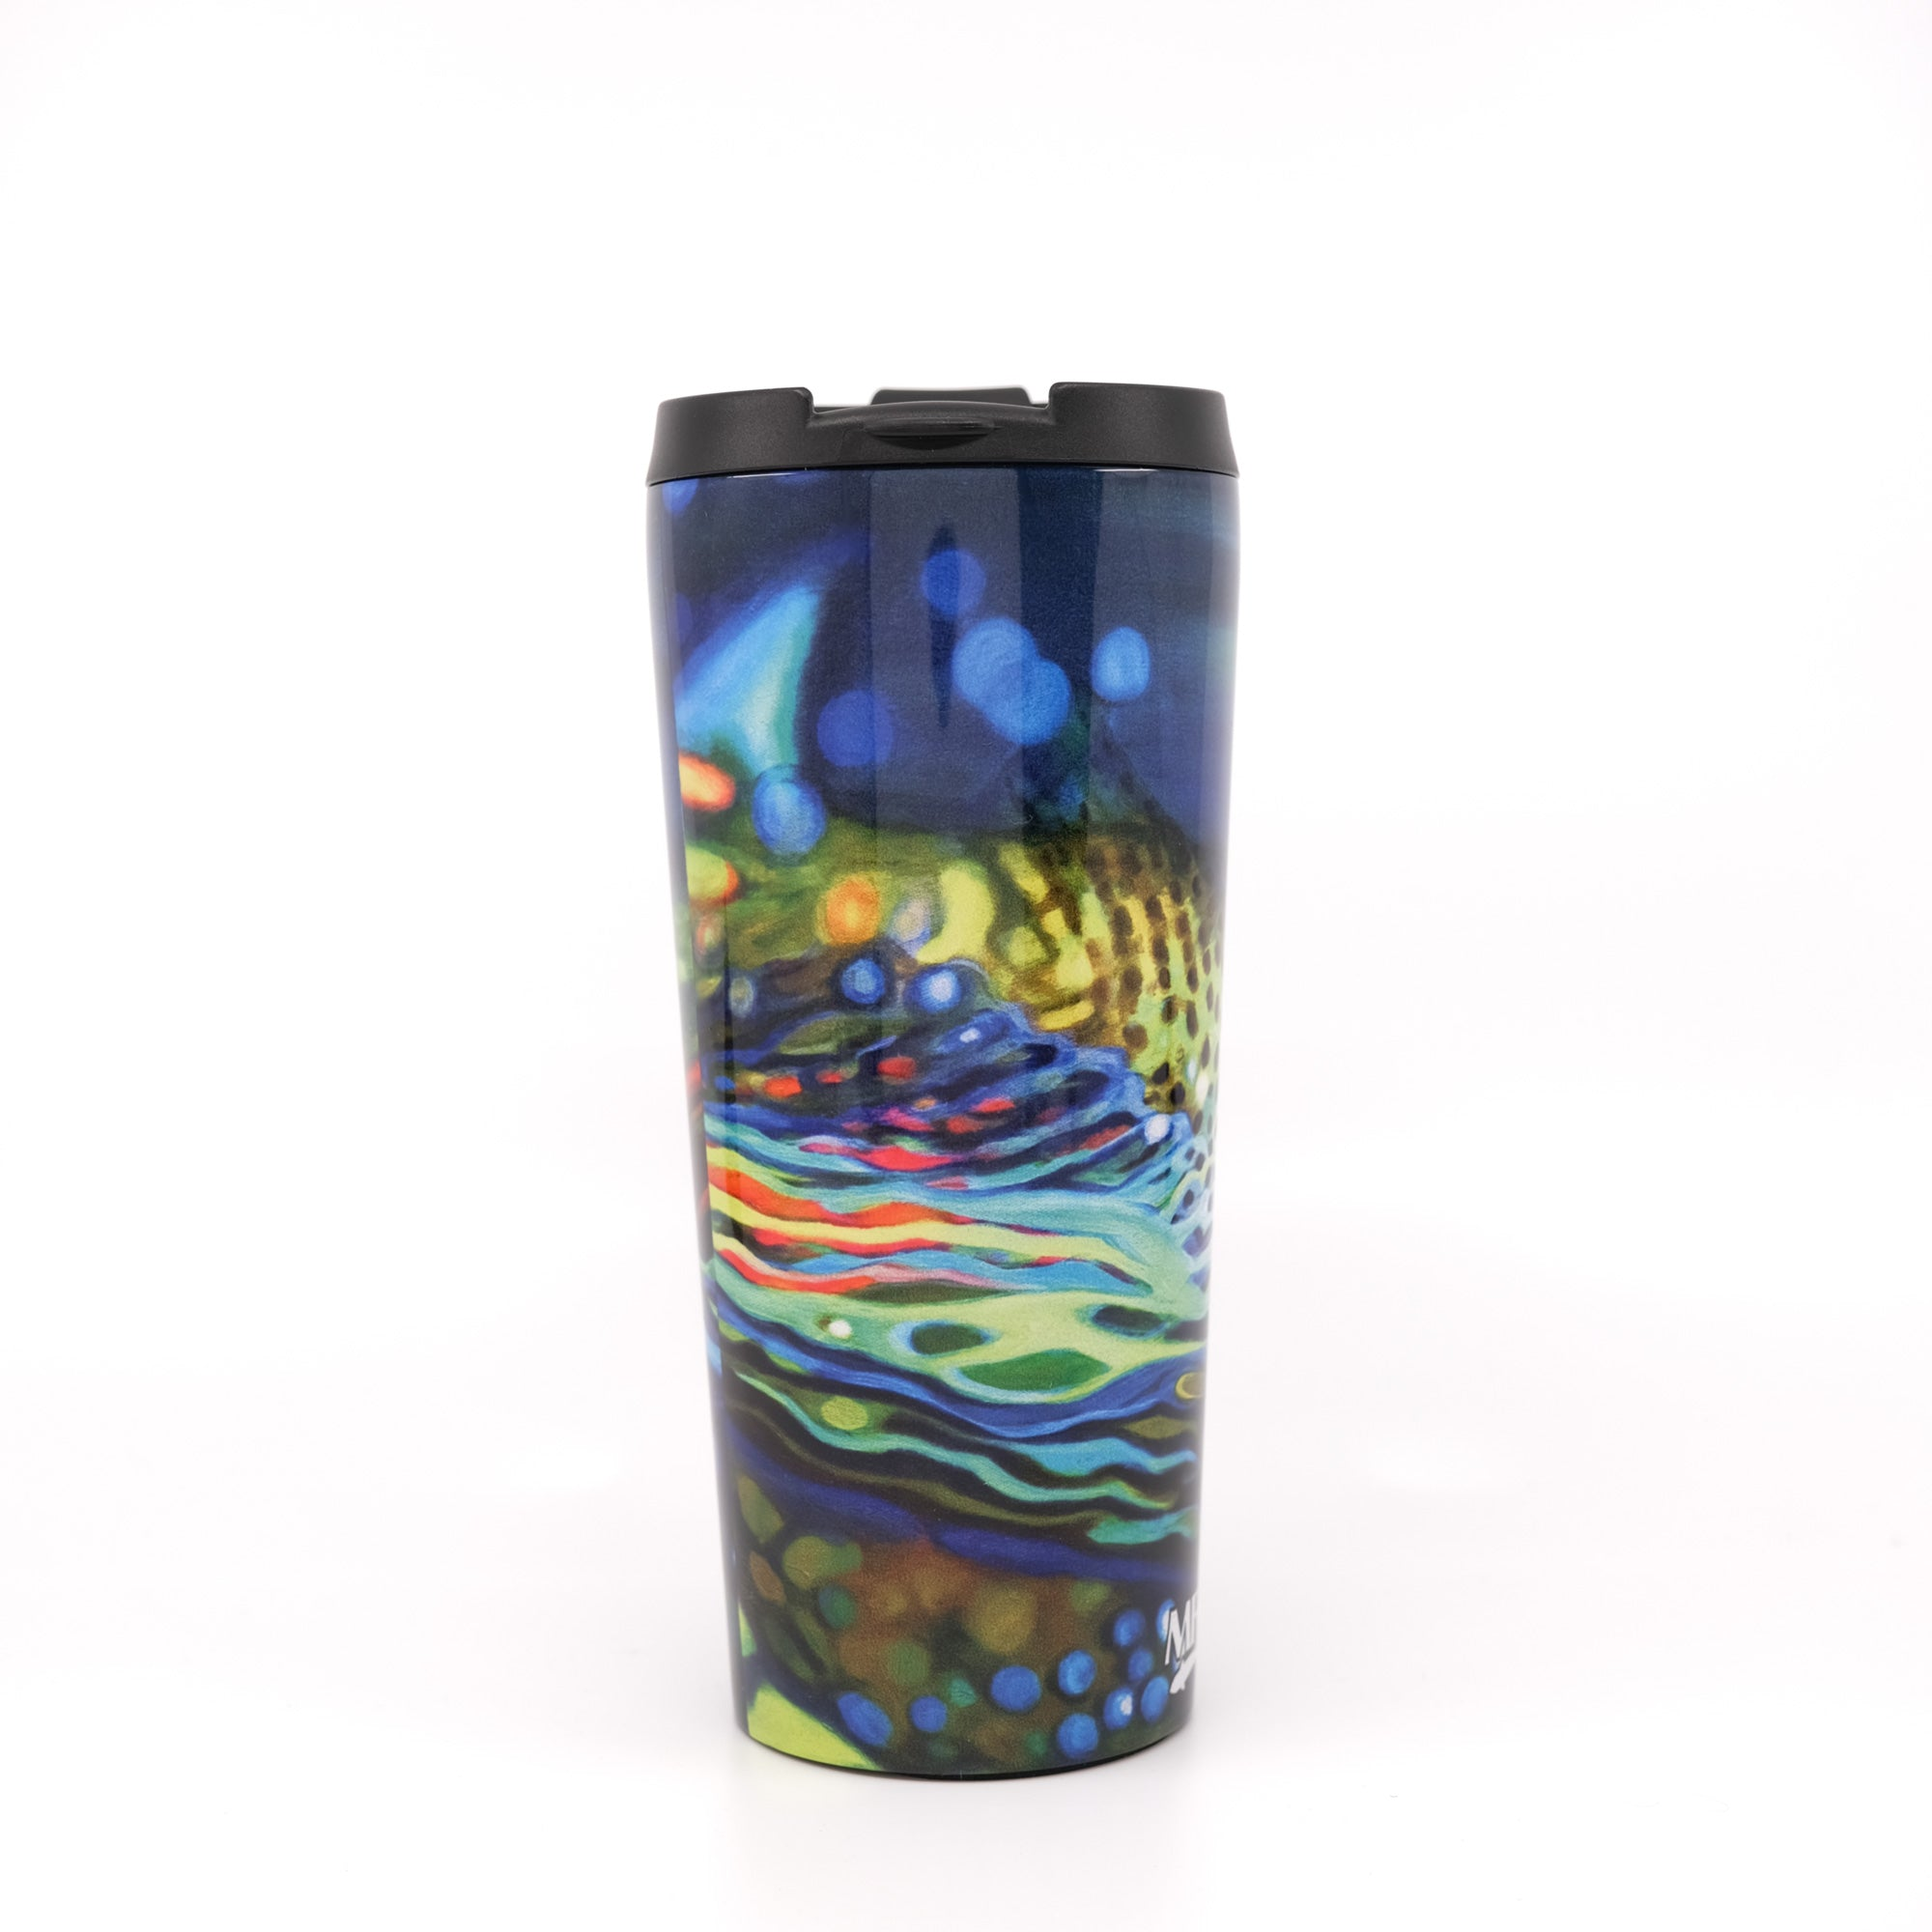 MFC Travel Mug - Maddox's Not Over Yet